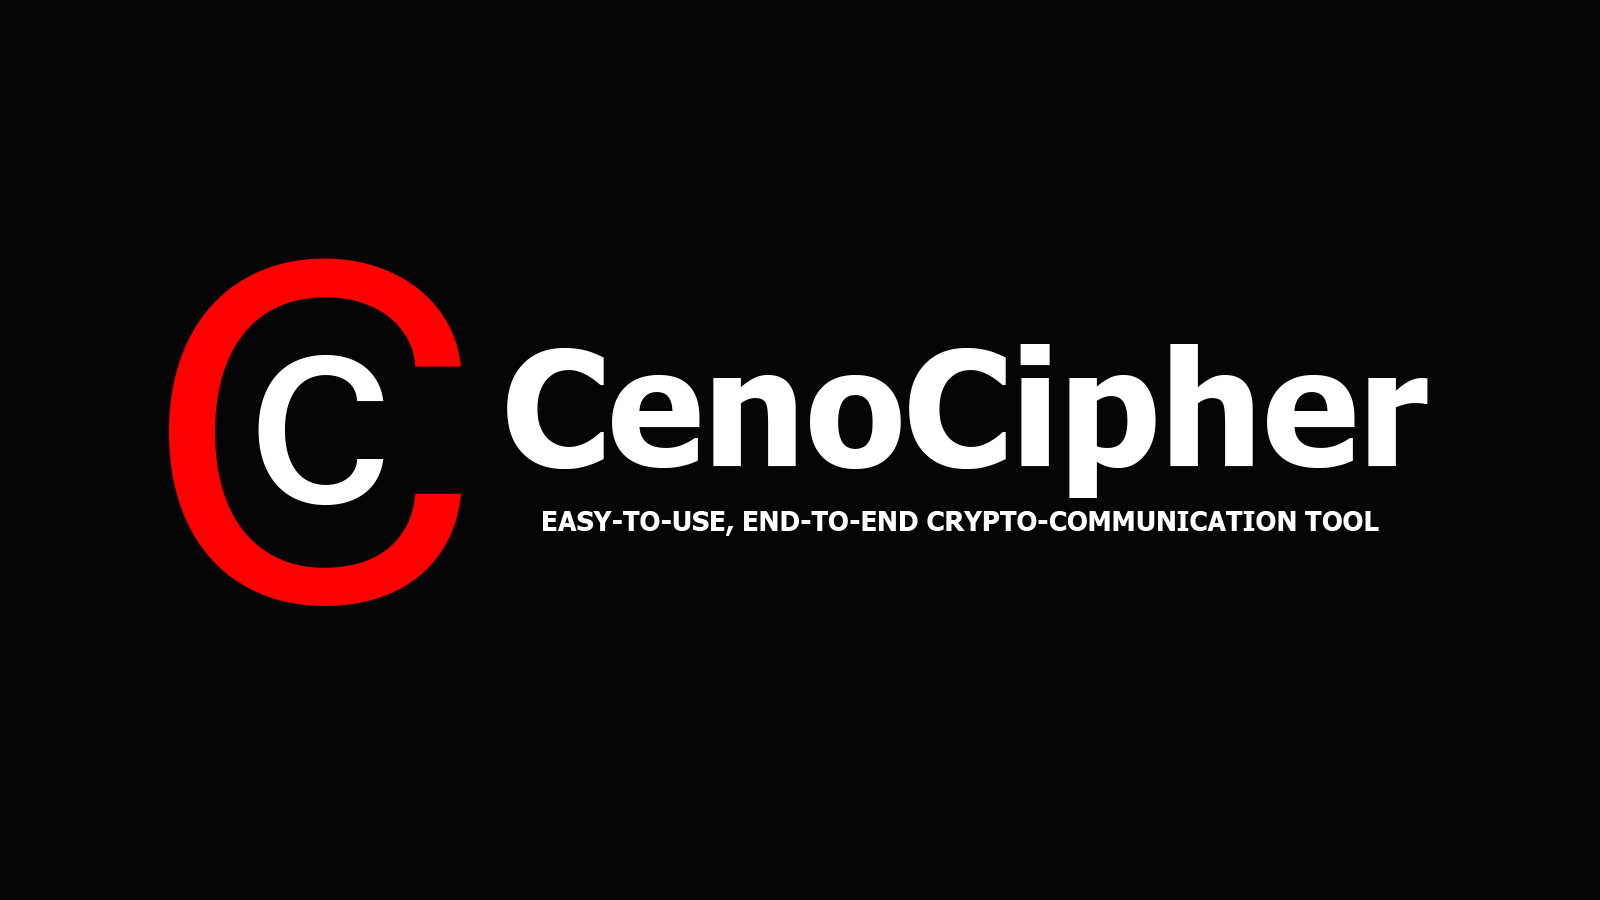 CenoCipher – Easy-to-Use, End-to-End Crypto-Communication Tool